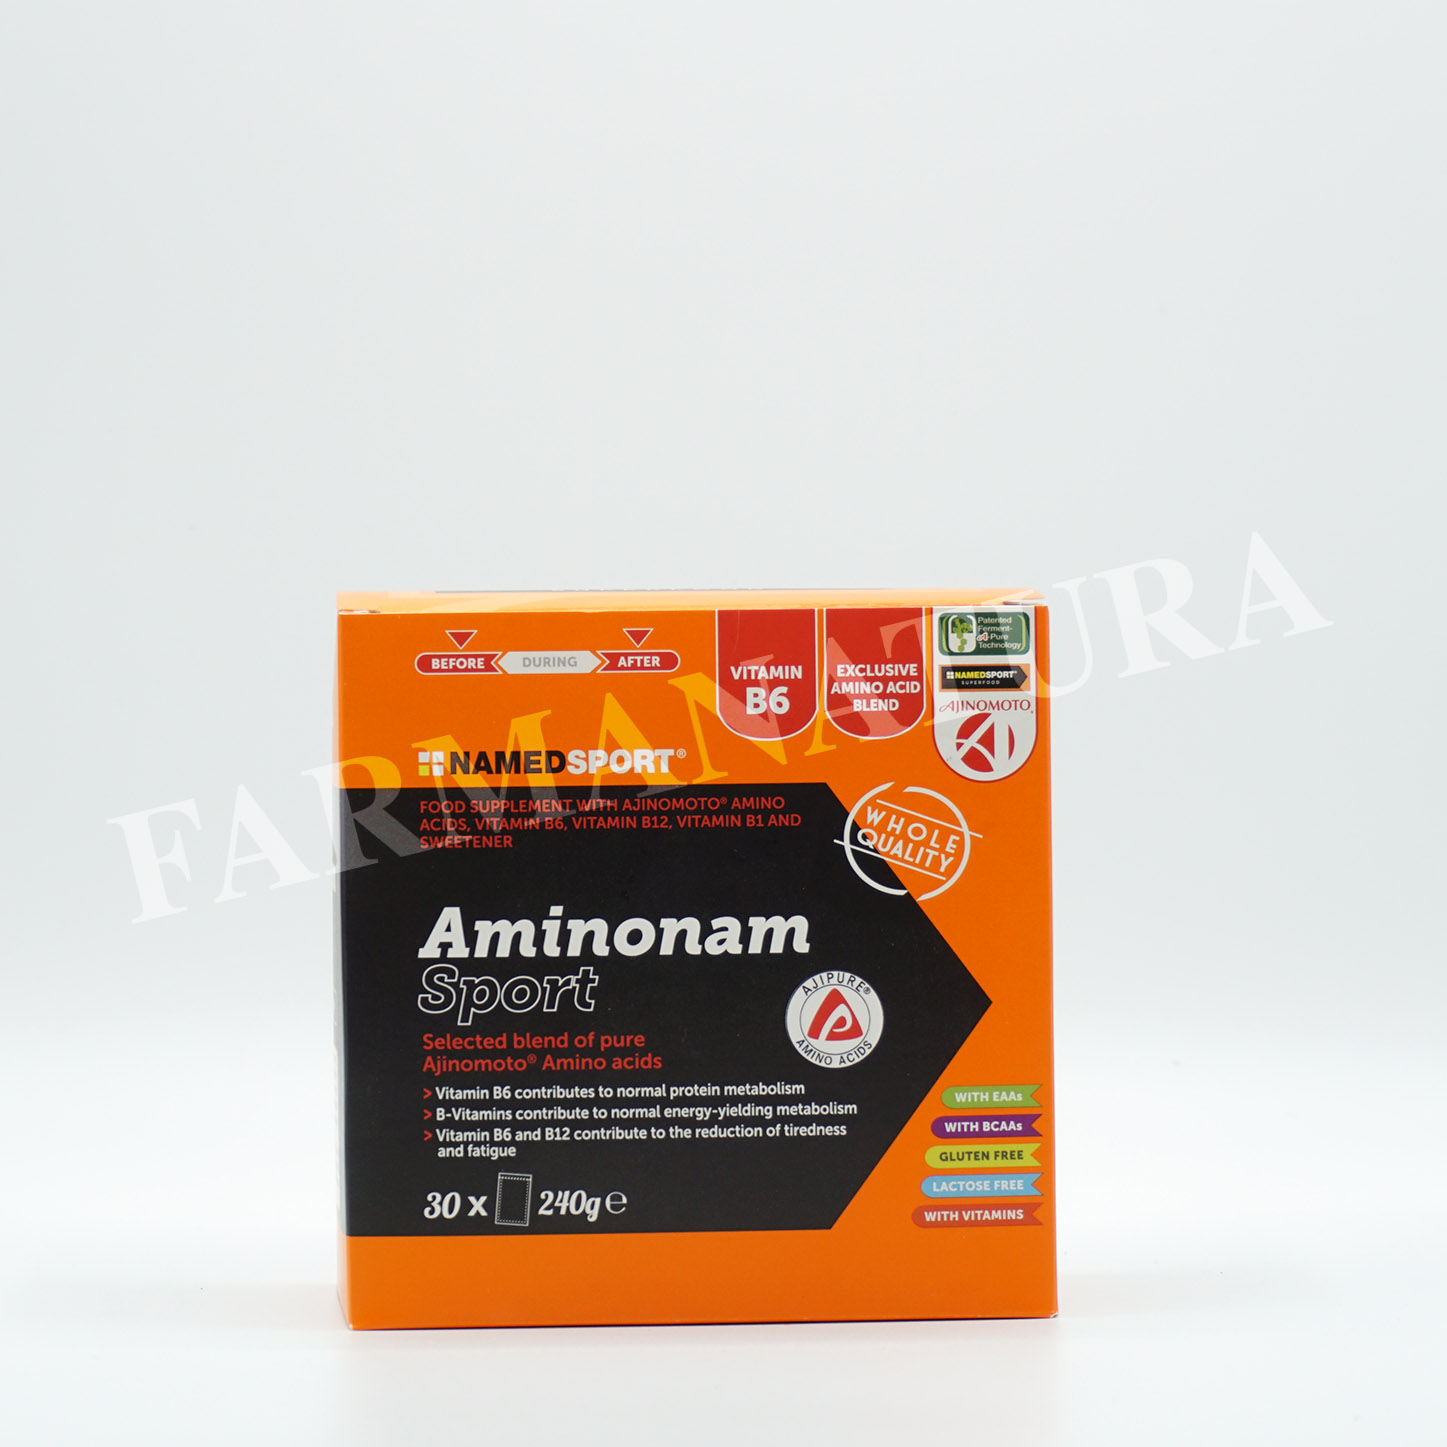 Aminonam Sport 30 Bst Named